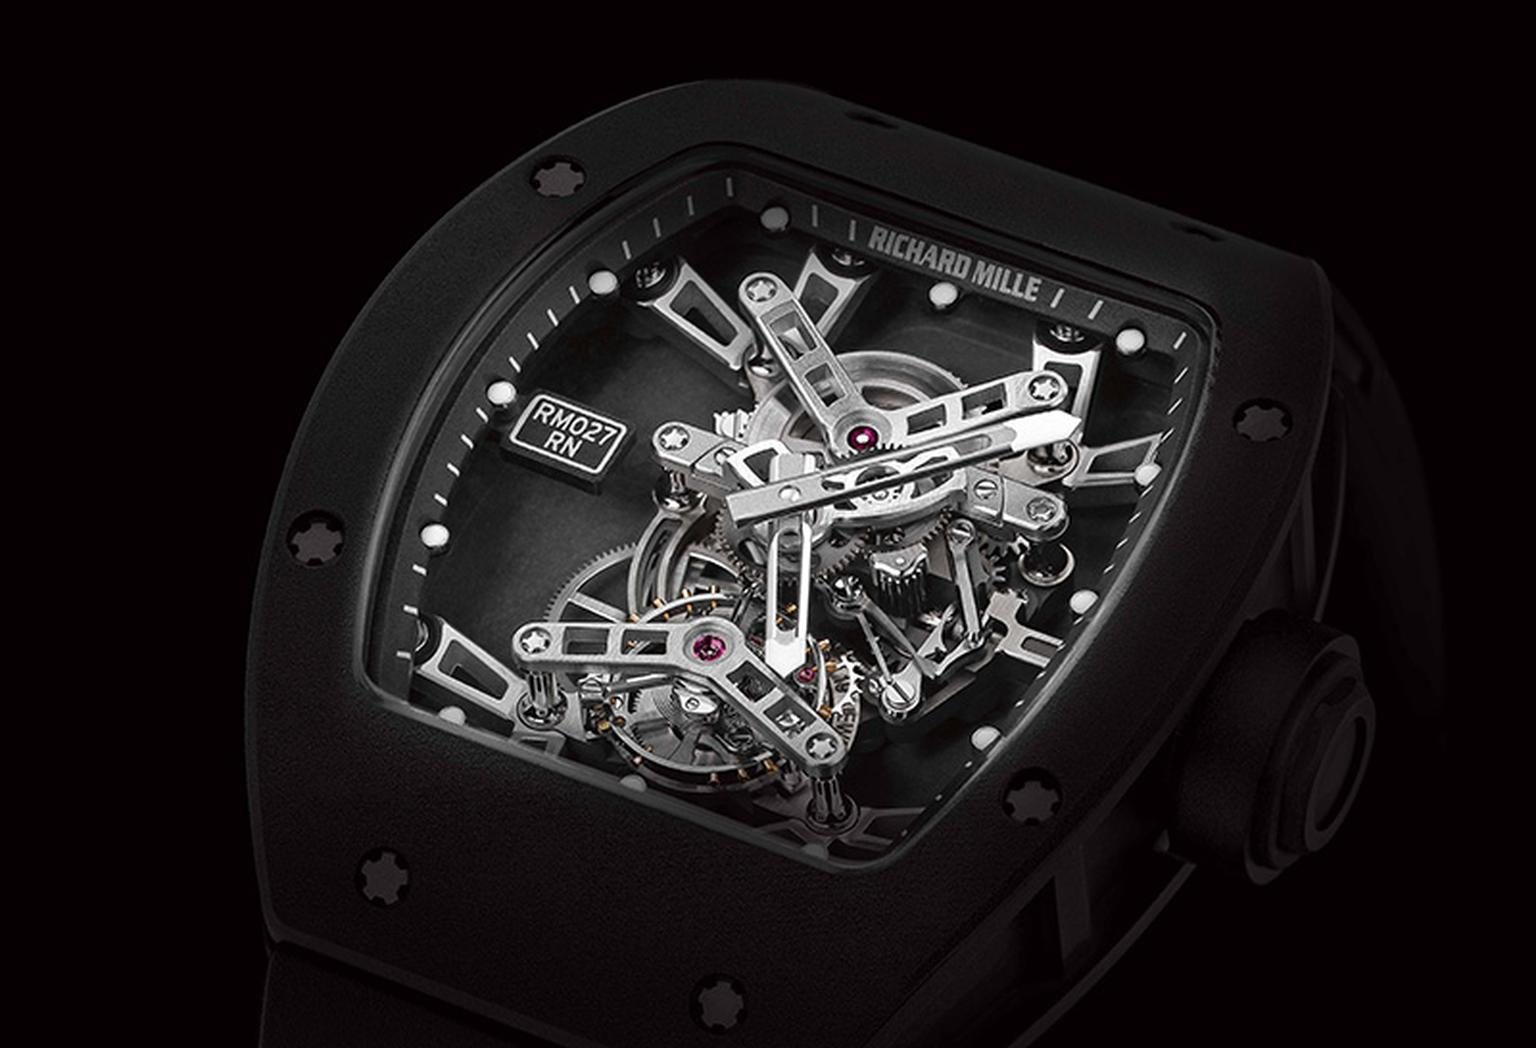 Rafael Nadal's Richard Mille watch